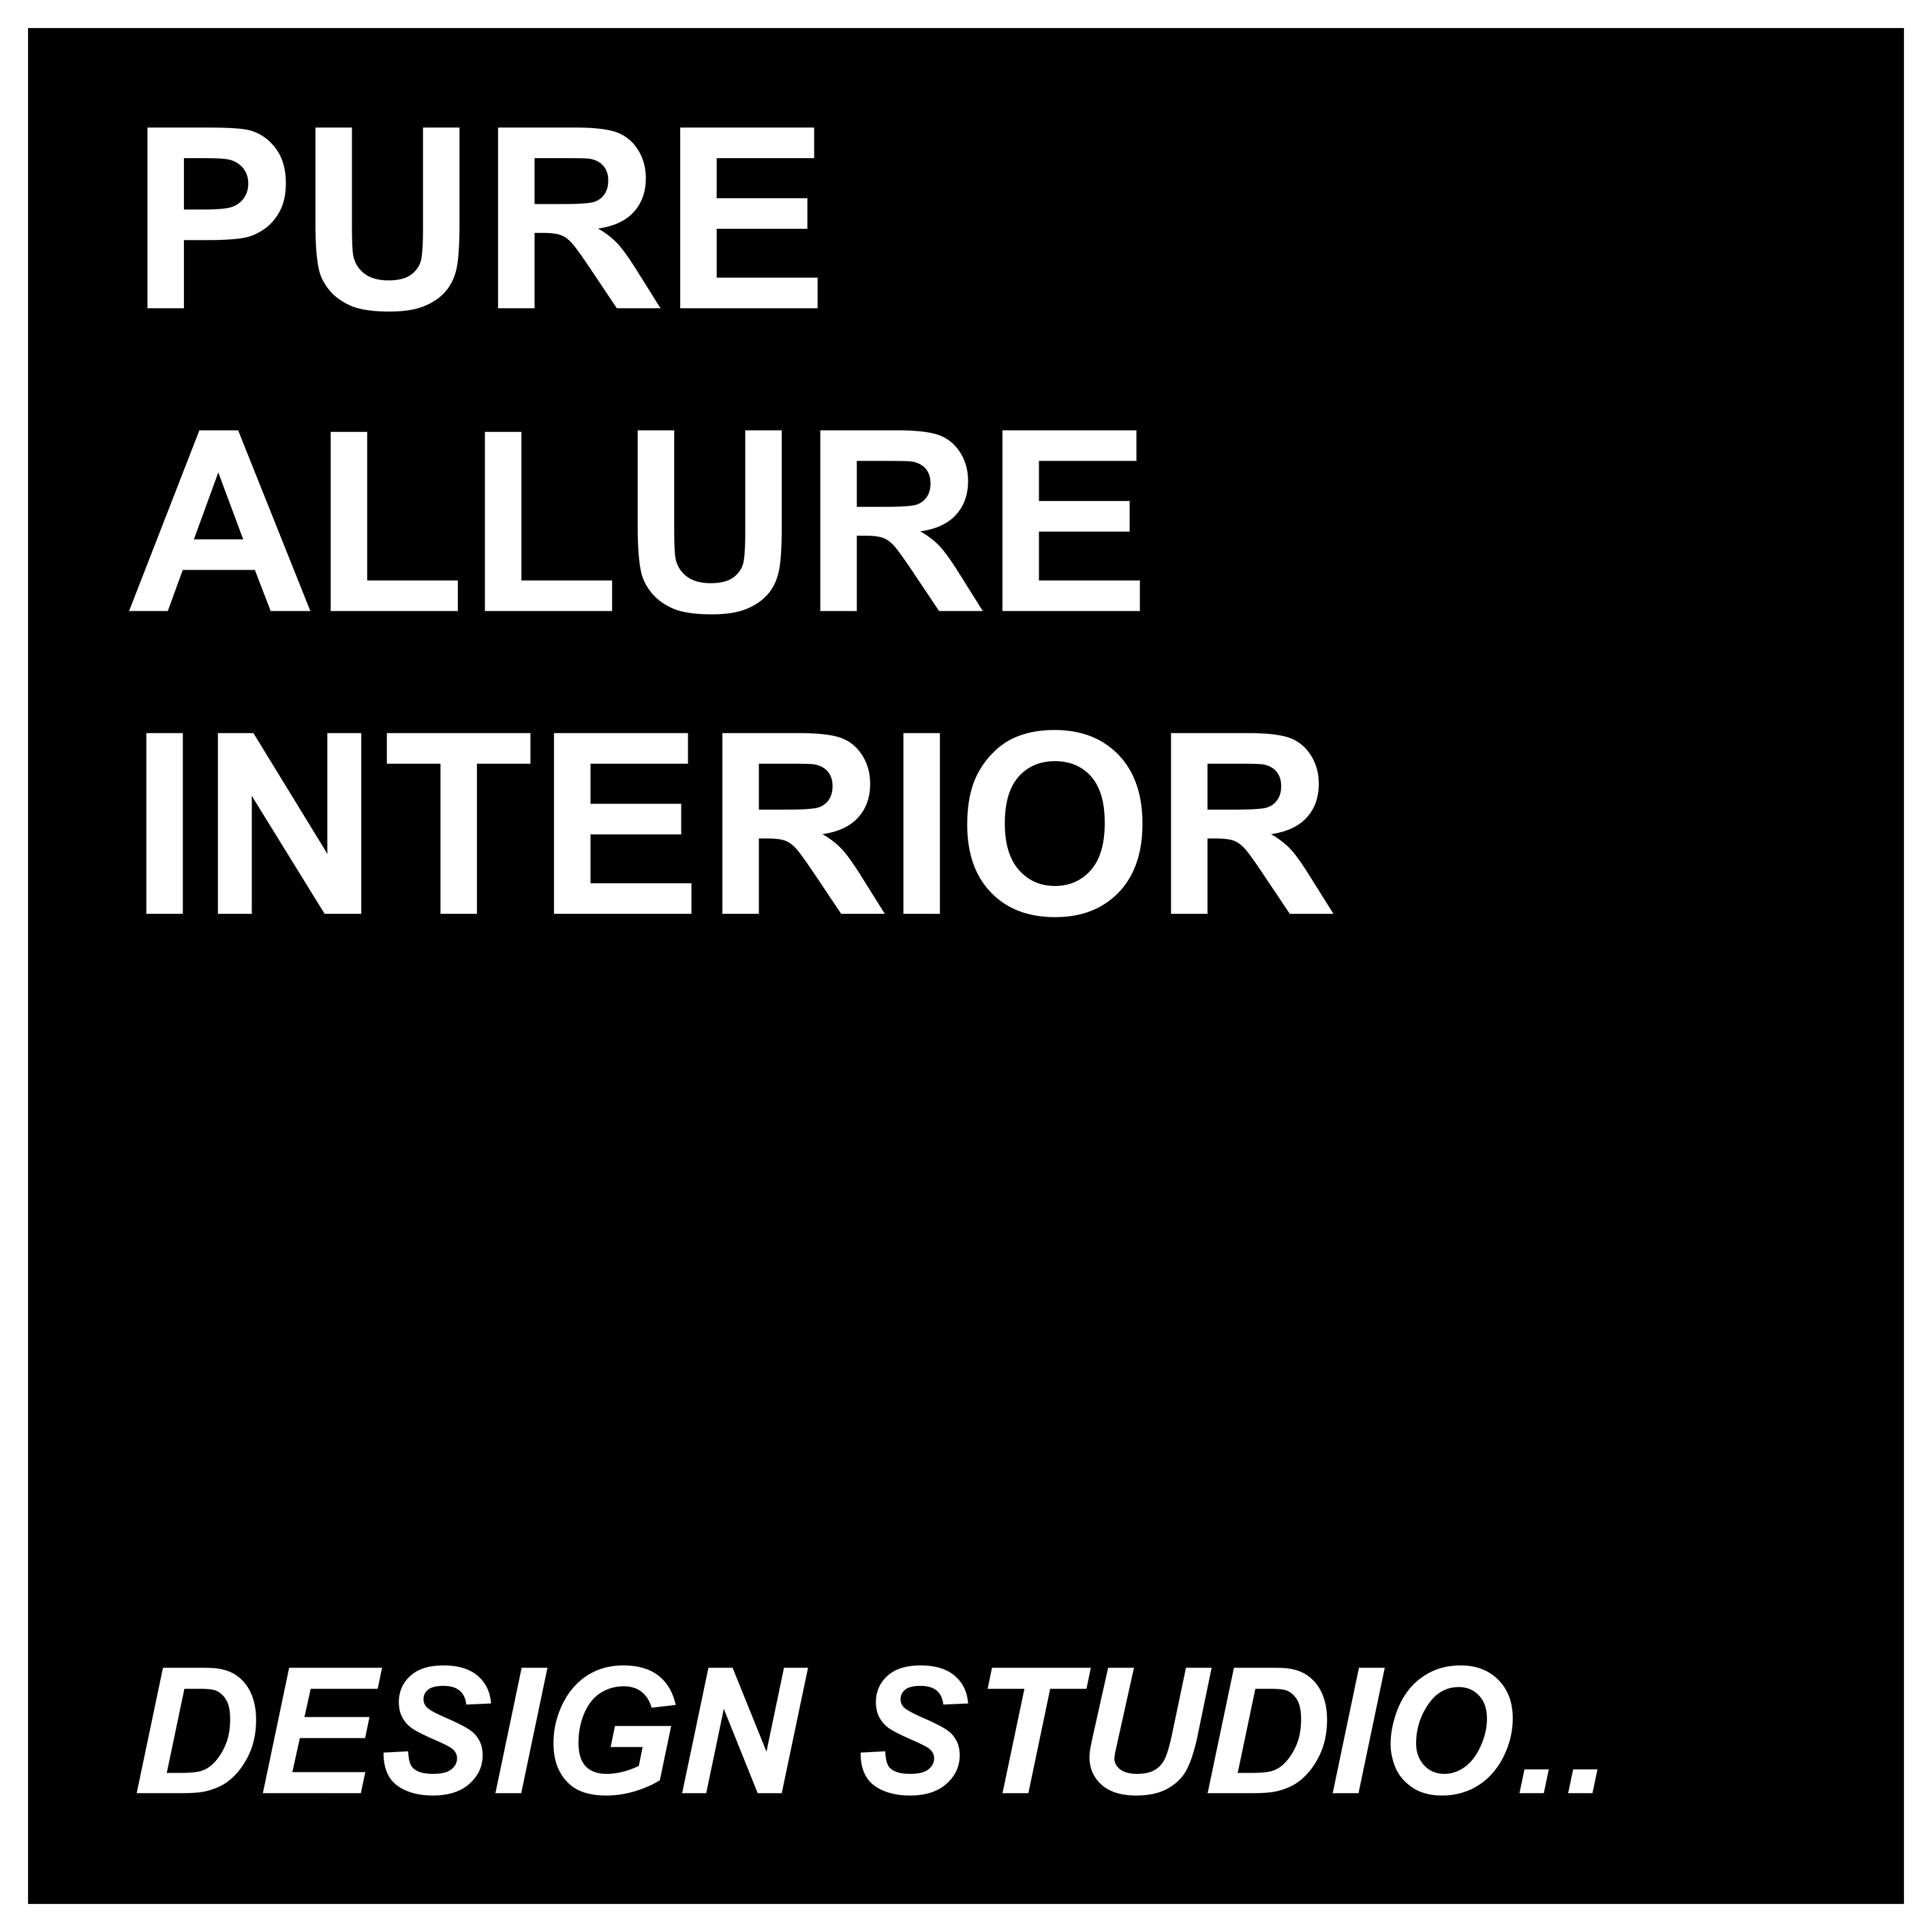 PURE-ALLURE-INTERIOR